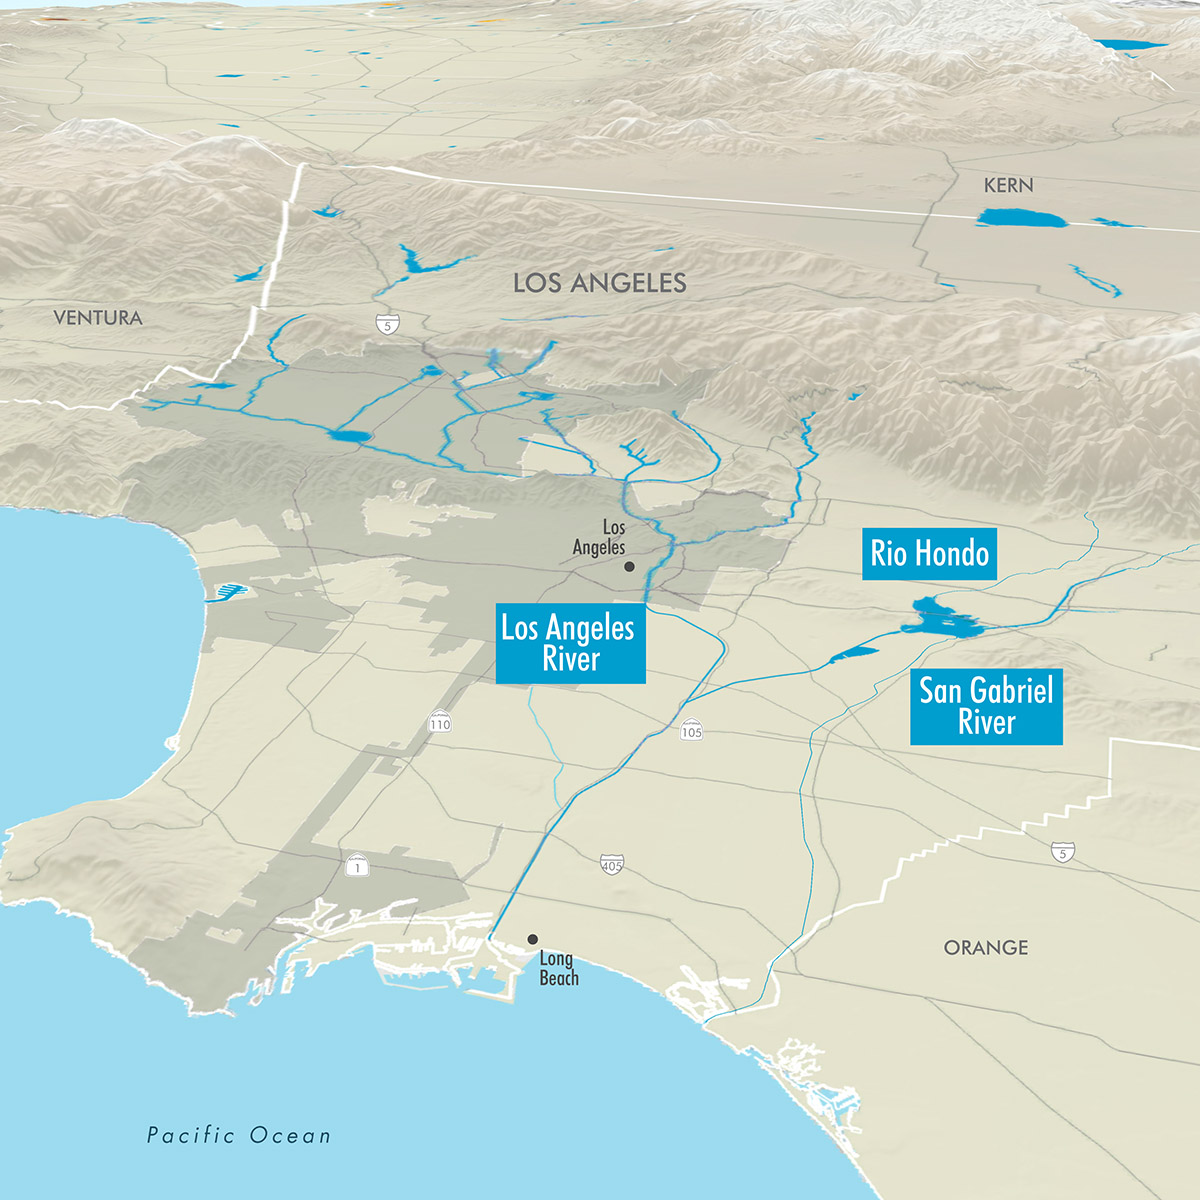 GreenInfo Network Information And Mapping In The Public Interest - Los angeles river map